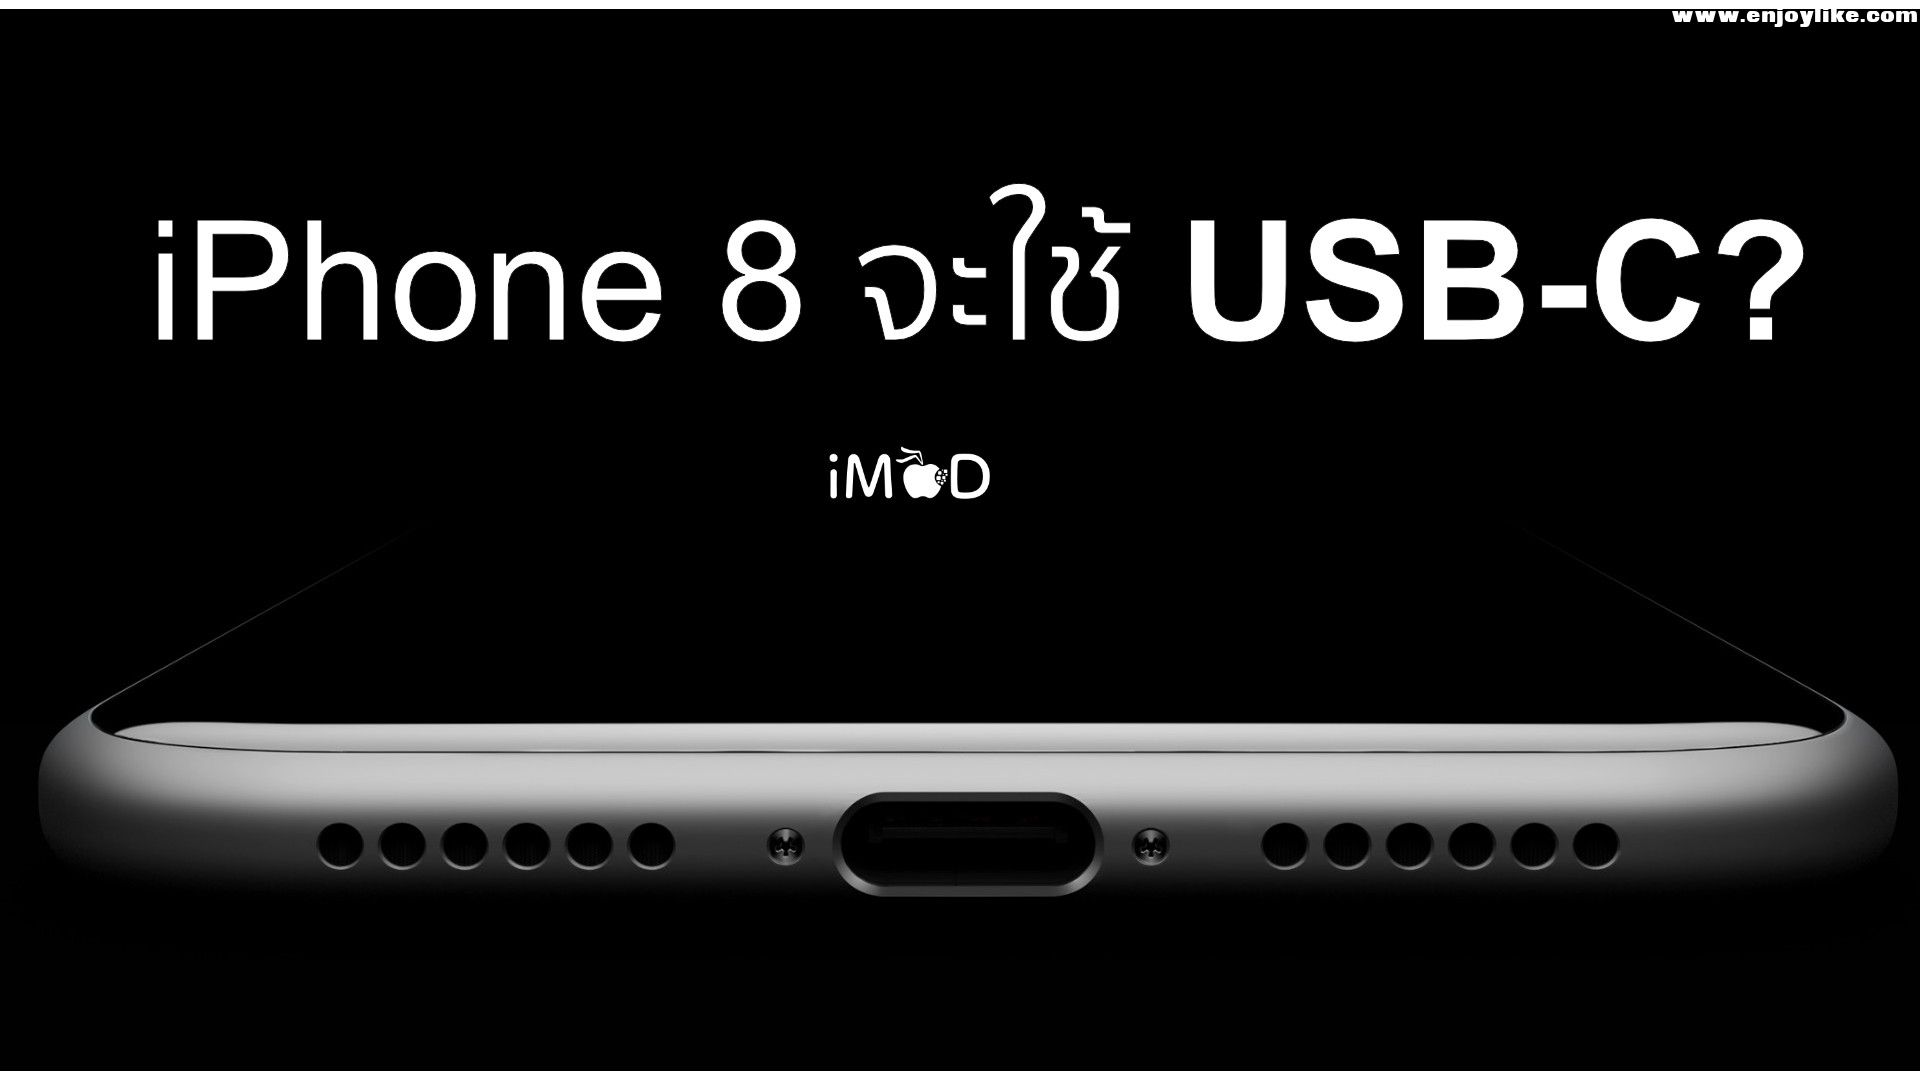 iphone-8-usbc-rumor.jpg